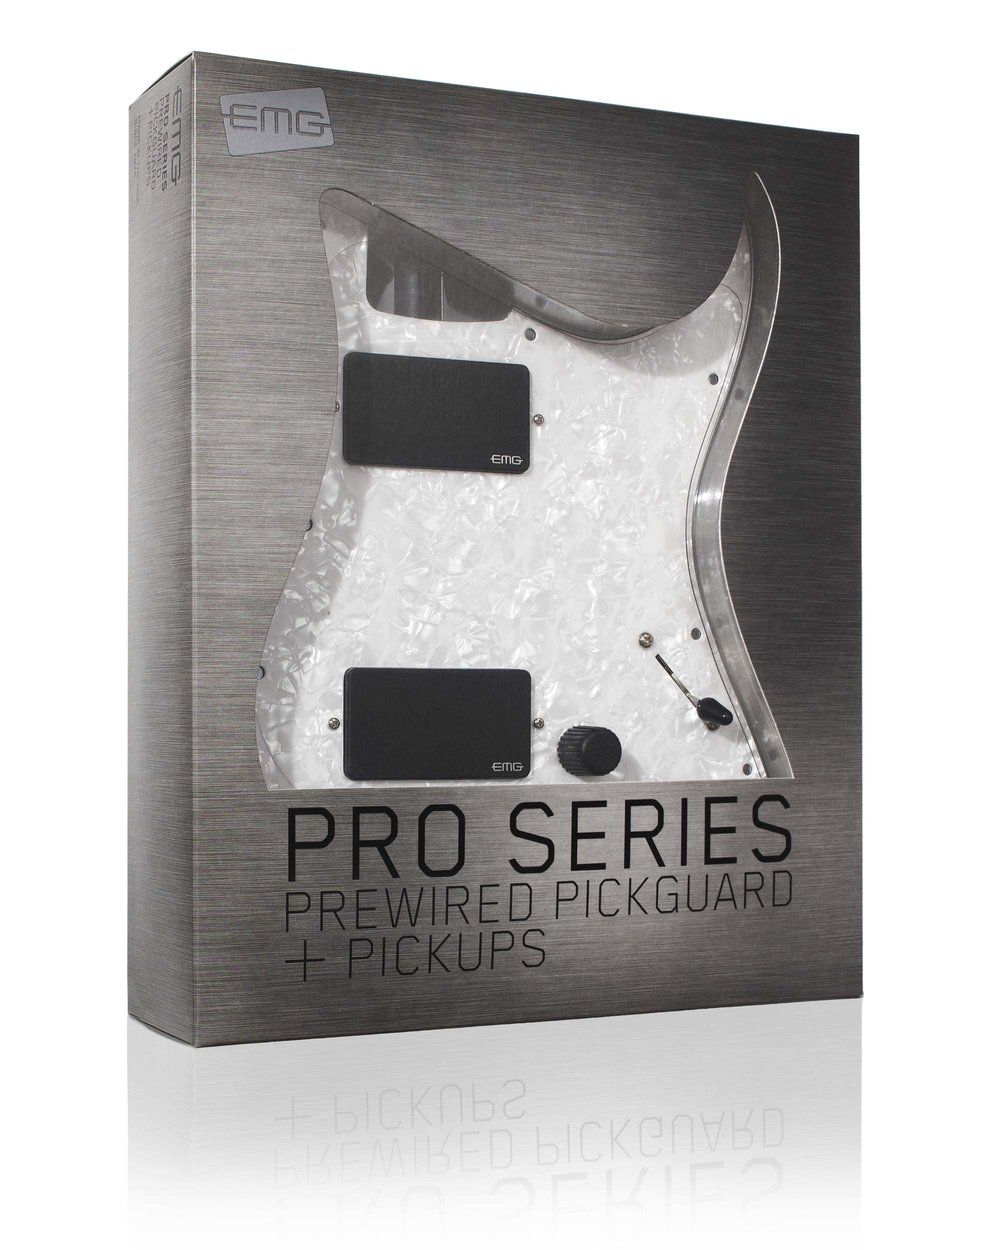 EMG-Packaging-Pro-Series.jpg